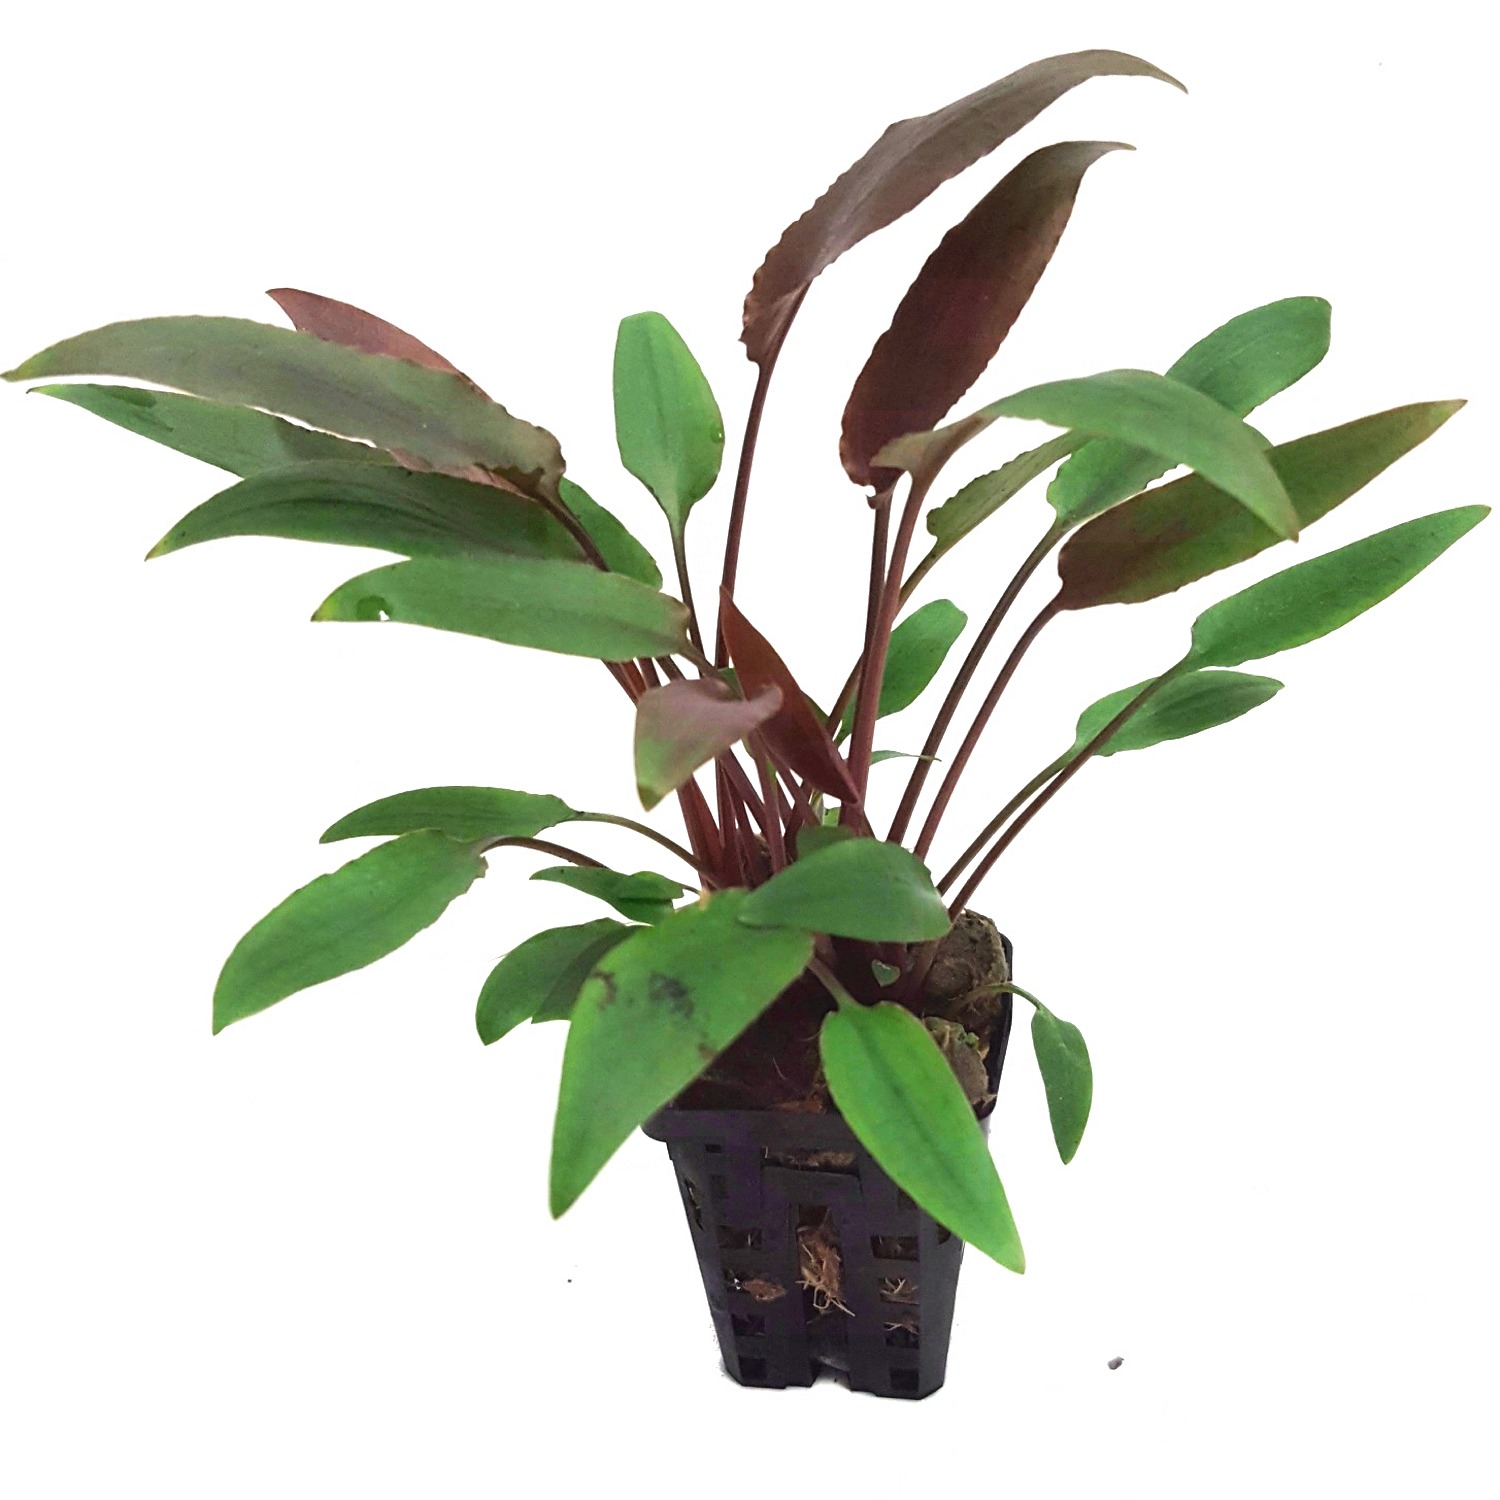 Cryptocoryne walkerii plante d\'aquarium en pot de diamètre 5 cm